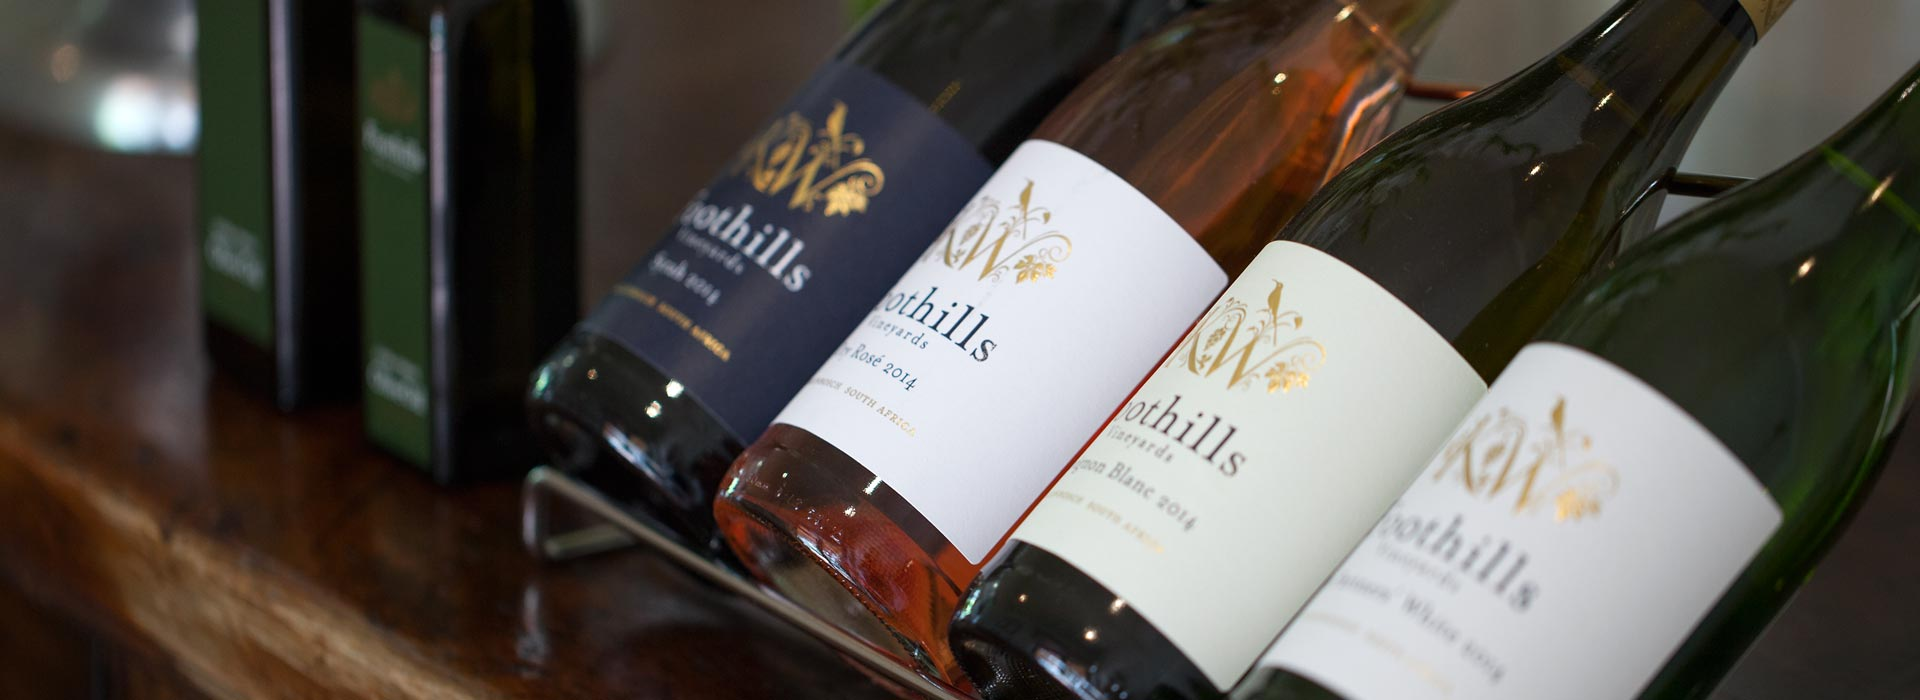 Foothills Wines